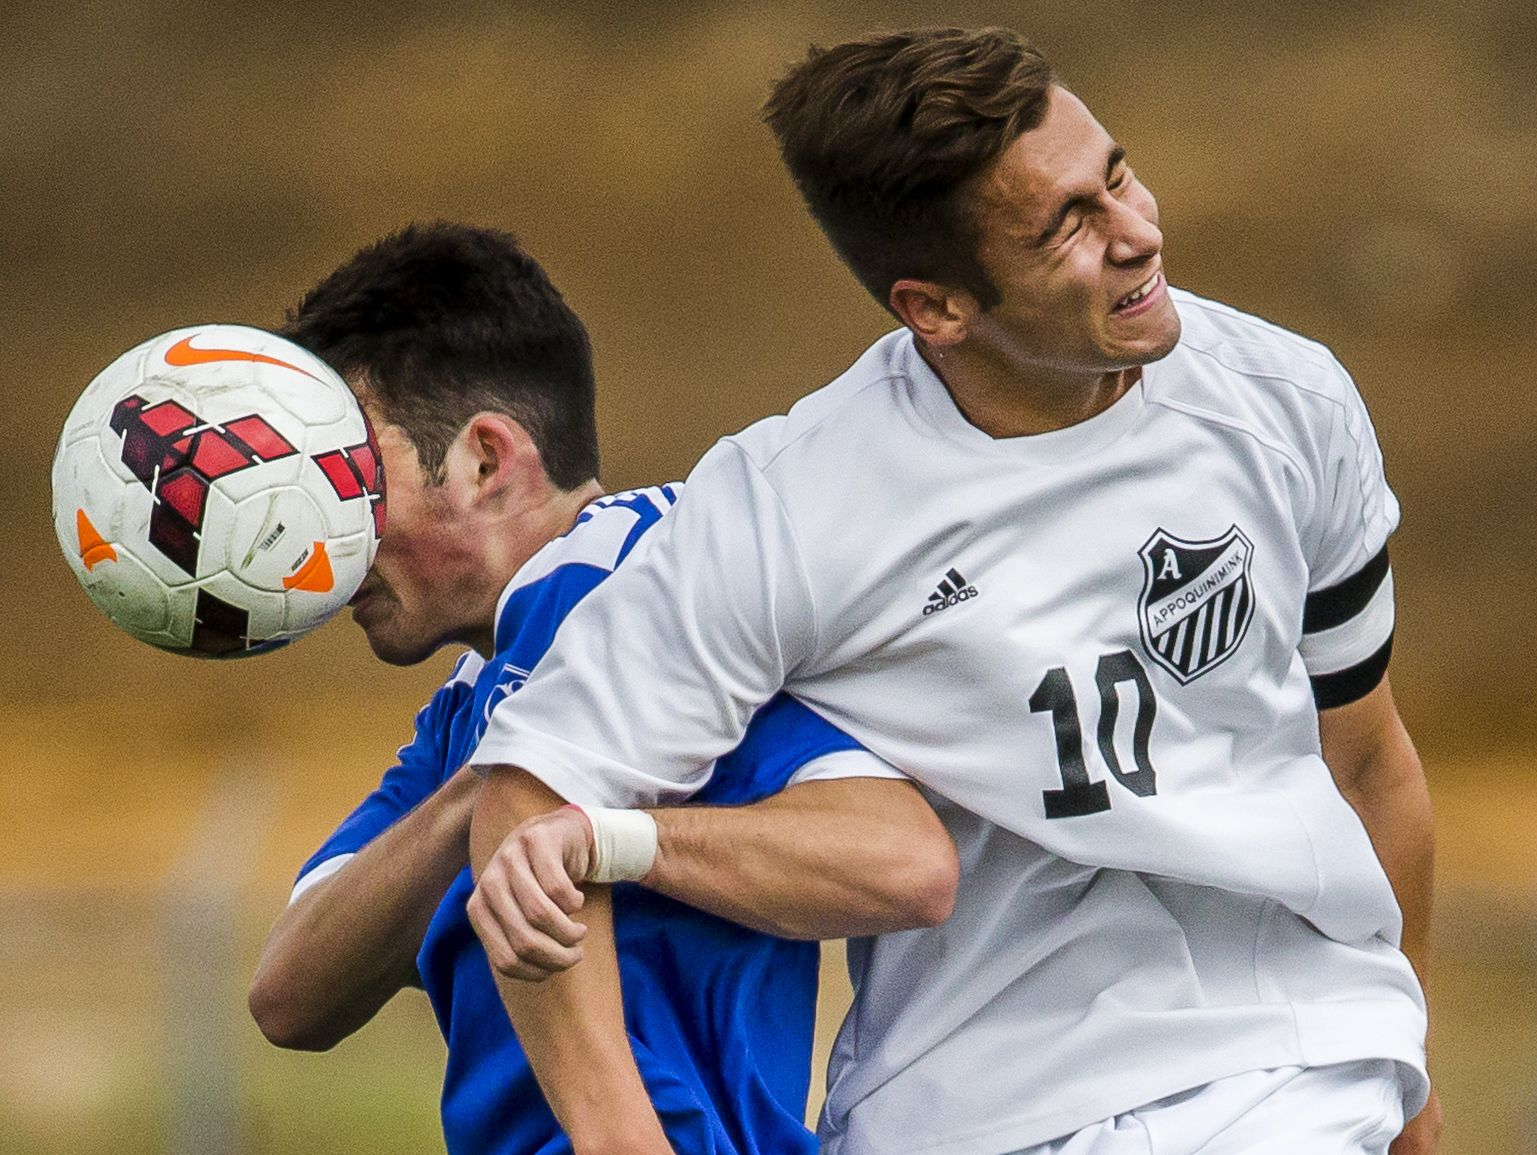 Appoquinimink's Joseph Scarpinato (right) heads the ball over Charter's Patrick O'Connor in the first half of Appoquinimink's 1-0 win over Charter School of Wilmington at Appoquinimink High School in Middletown on Tuesday afternoon.